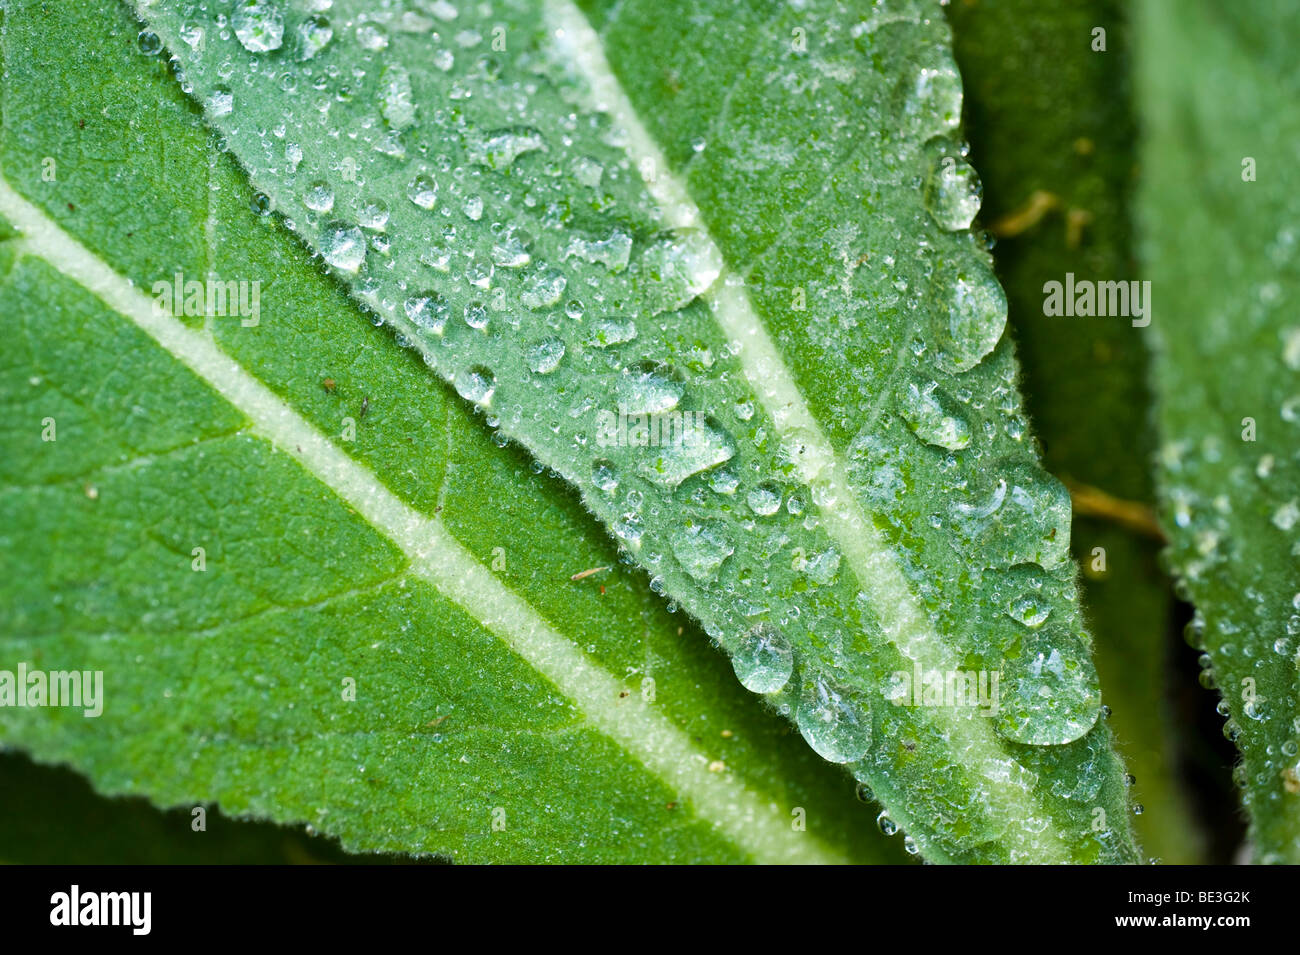 Mullein (Verbascum), leaf covered with water drops Stock Photo